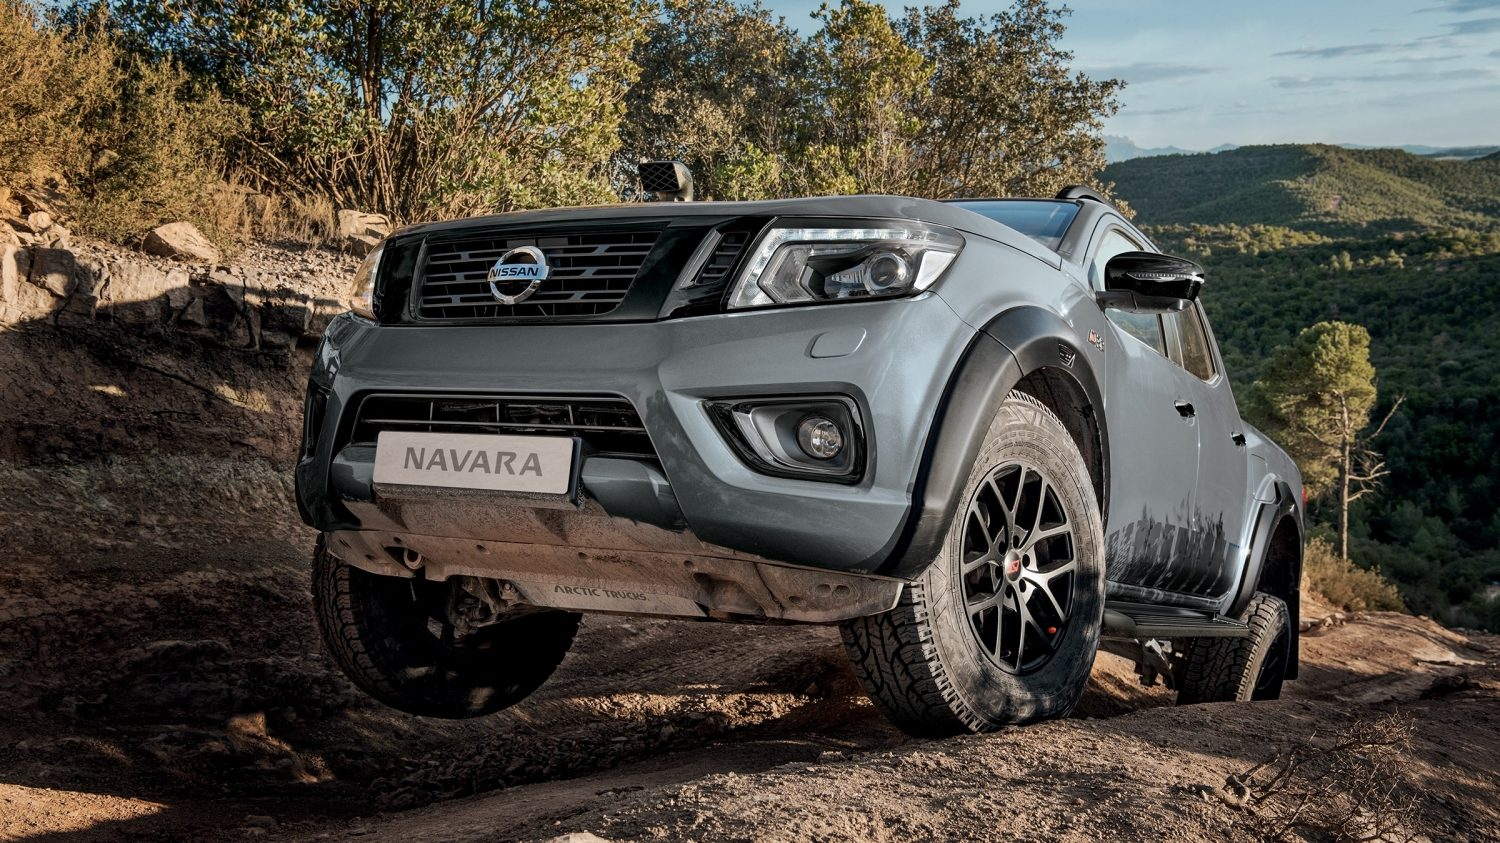 Aperçu image aventure du Nouveau Nissan NAVARA off-roader at32 pick-up